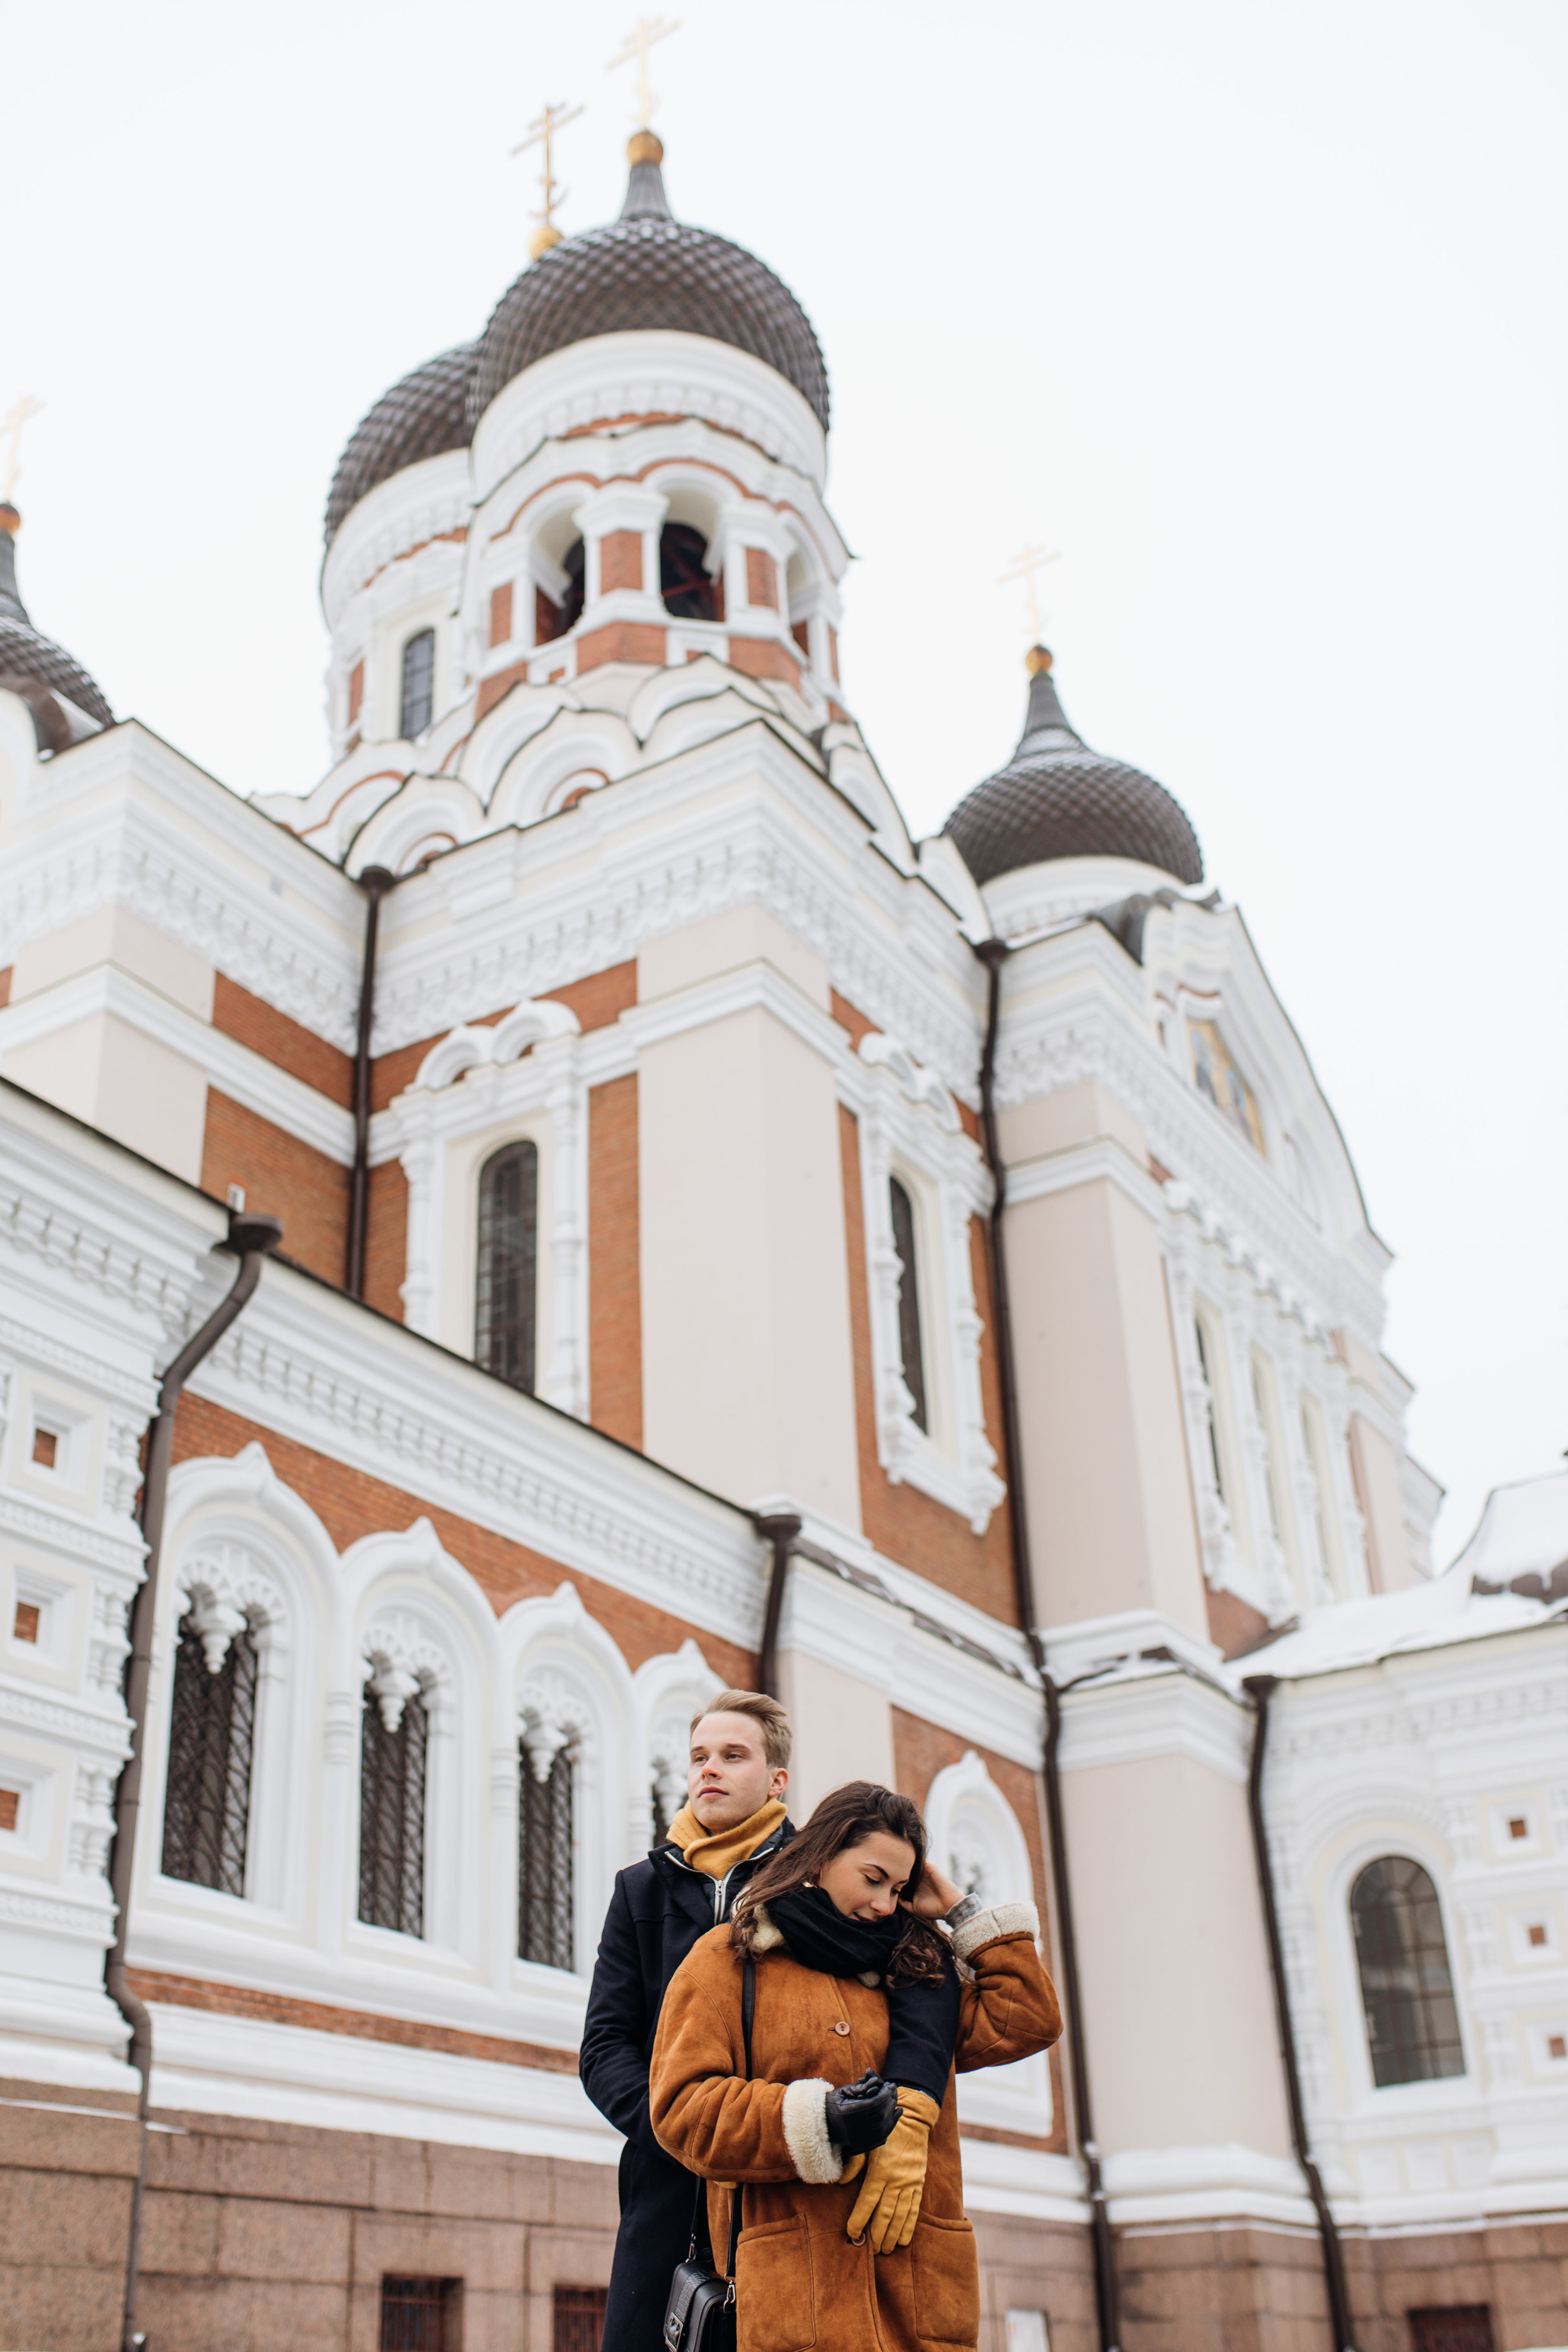 tallin-estonia-couple-portraits-engagement-destination-wedding-photography-48.jpg